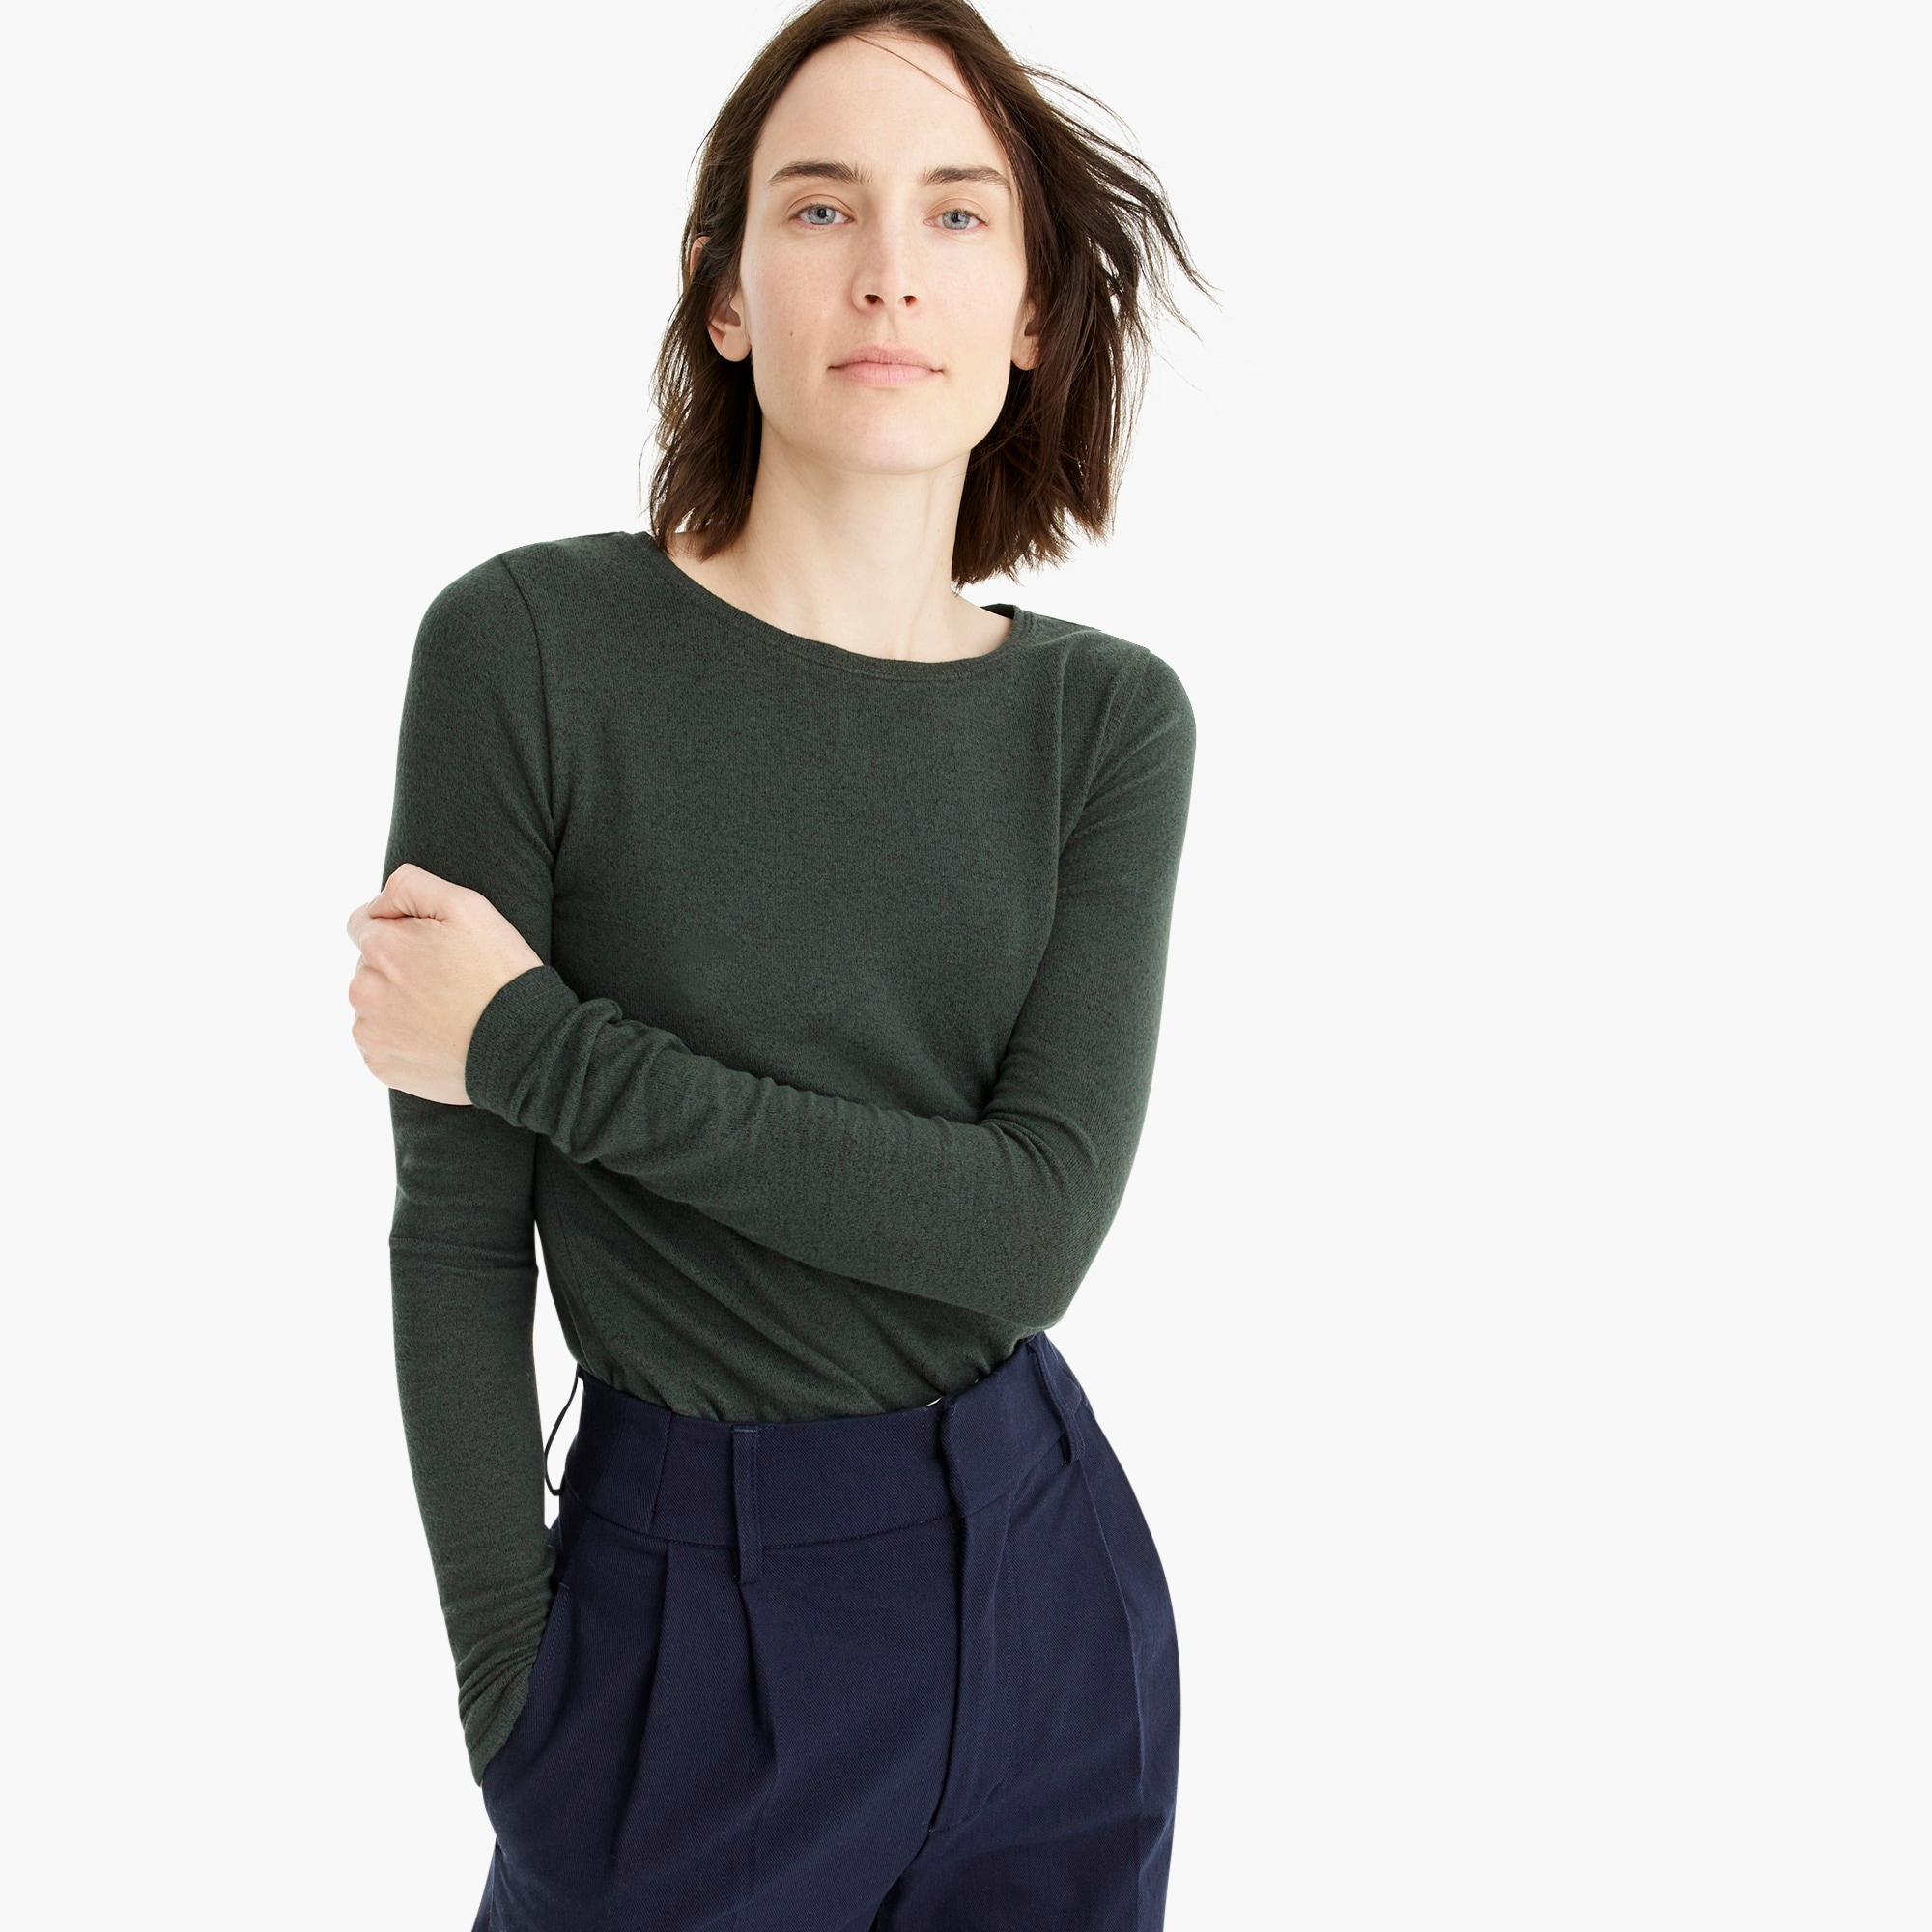 Supersoft long-sleeve shirt